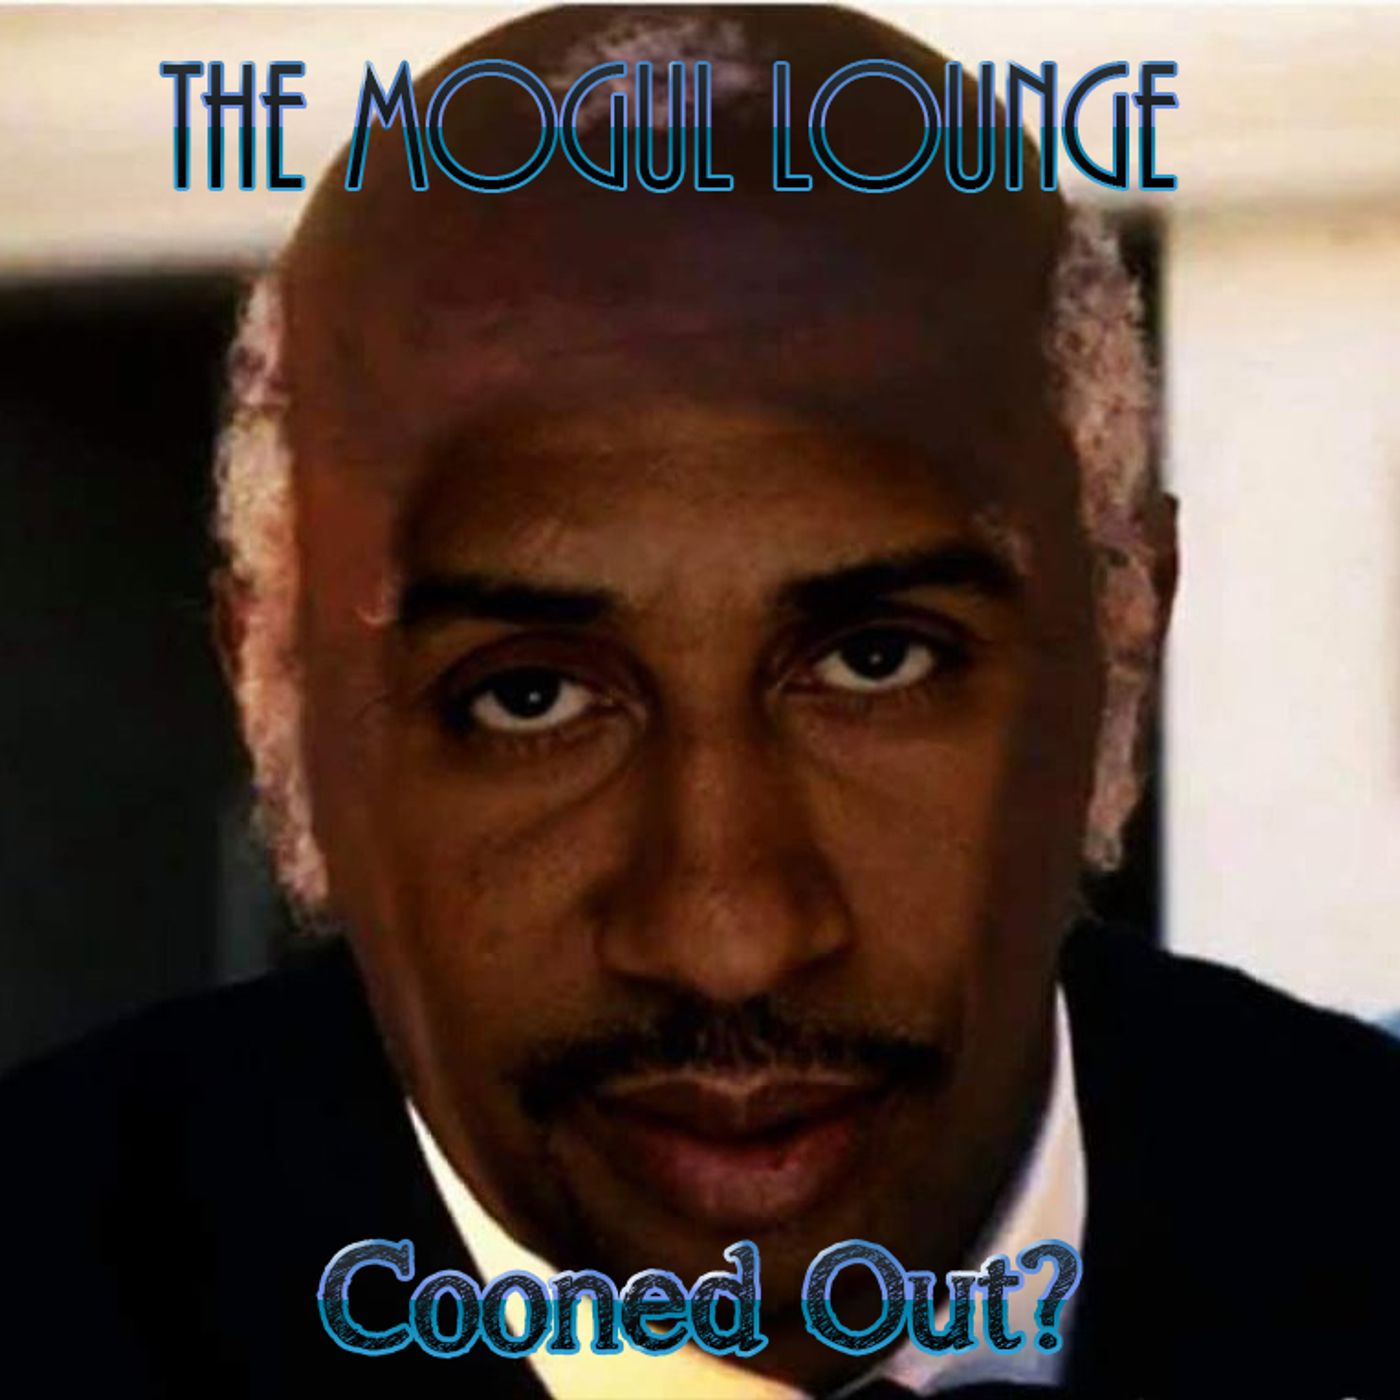 The Mogul Lounge Episode 209: Cooned Out?